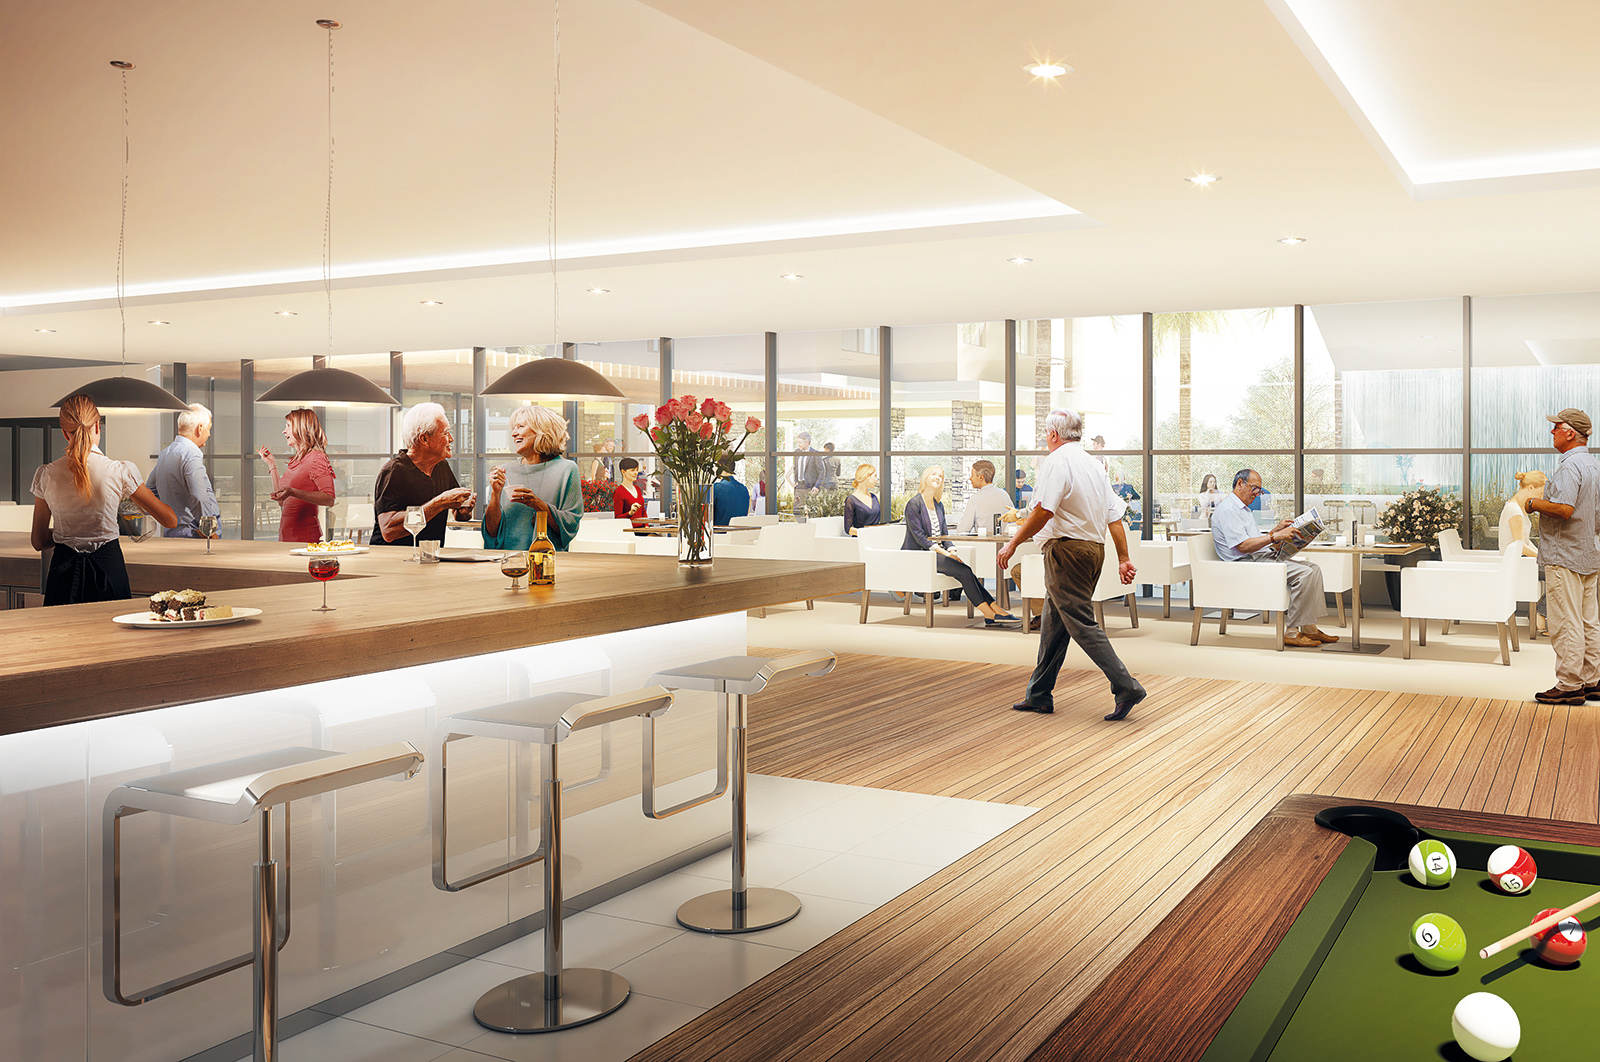 Indicative image of interior of proposed community facilities